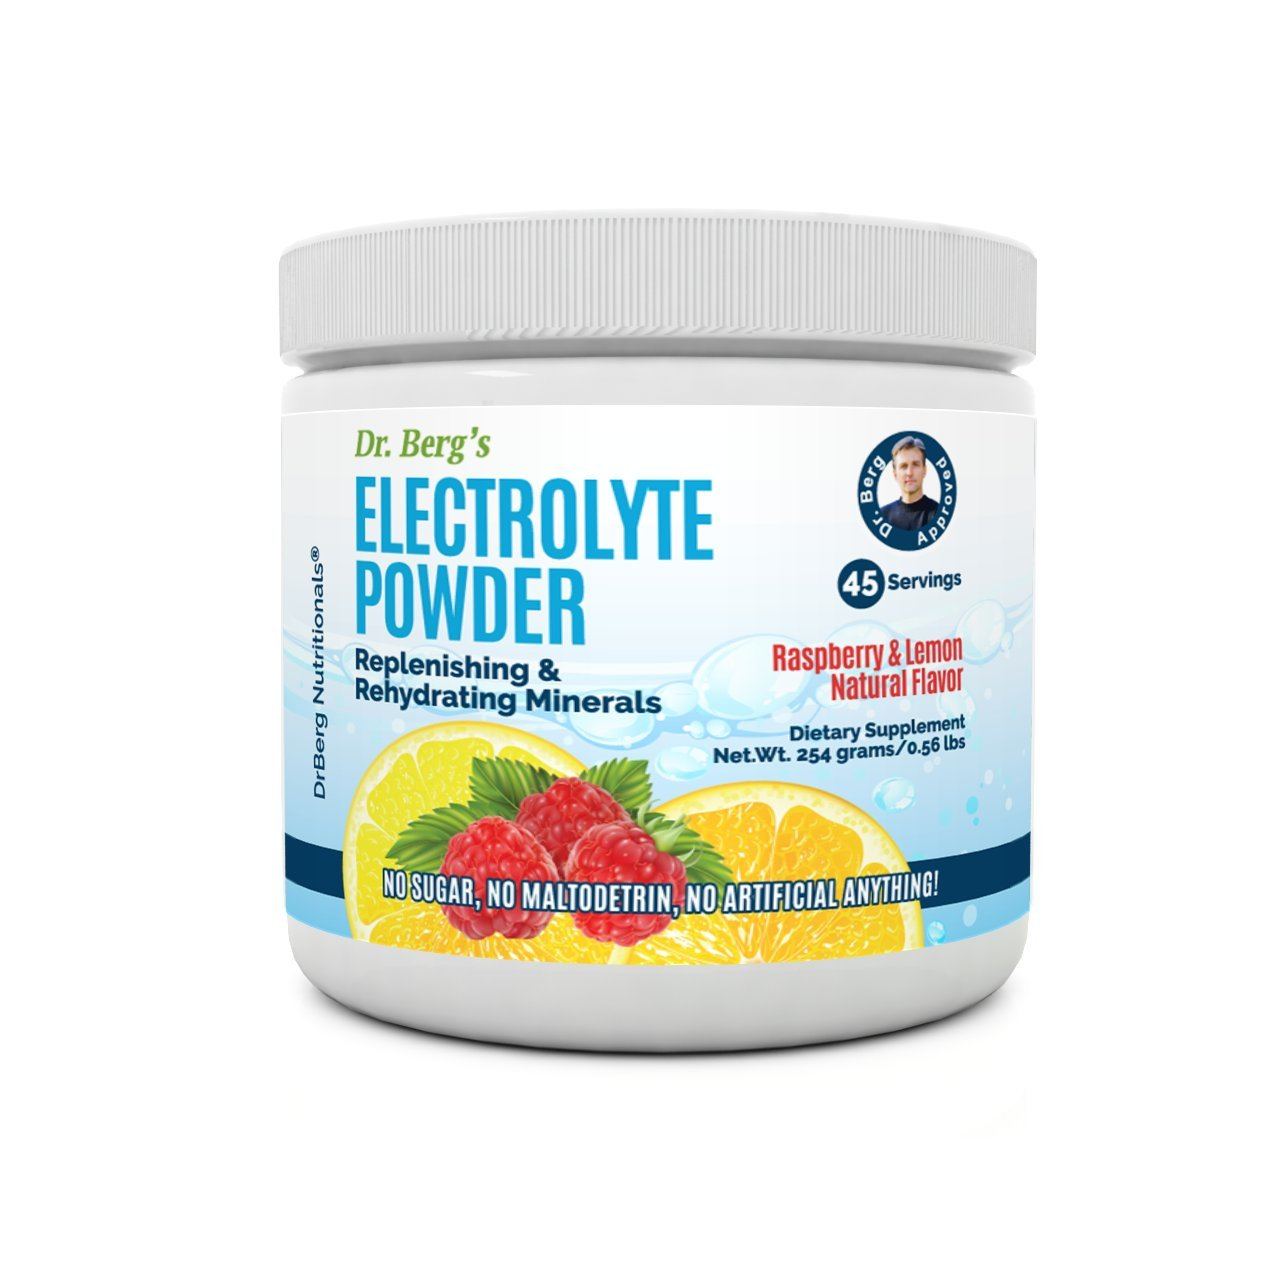 Dr. Berg's Electrolyte Powder, High Energy, Replenish & Rejuvenate Your Cells, 45 Servings, NO Maltodextrin or Sugar, Amazing Raspberry Lemon Flavor